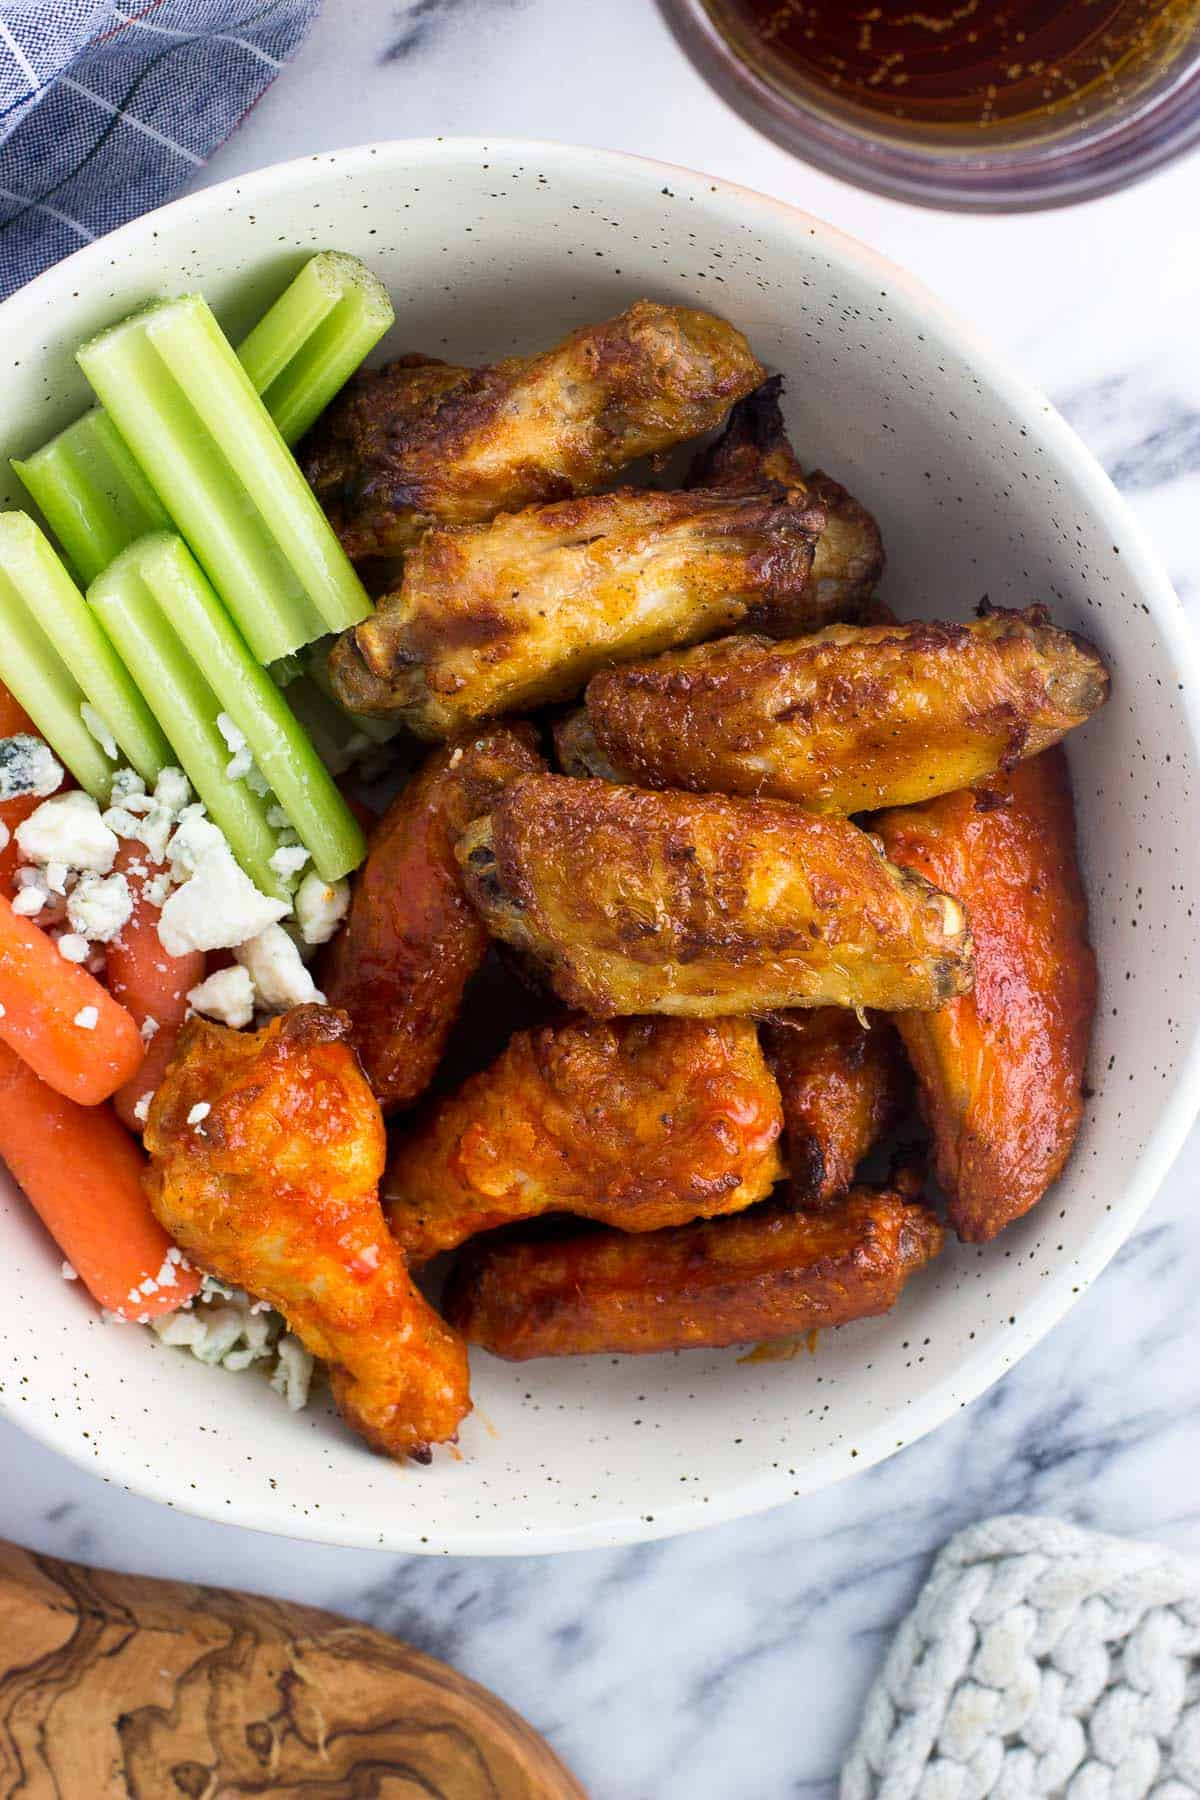 A bowl of wings, celery sticks, baby carrots, and blue cheese.